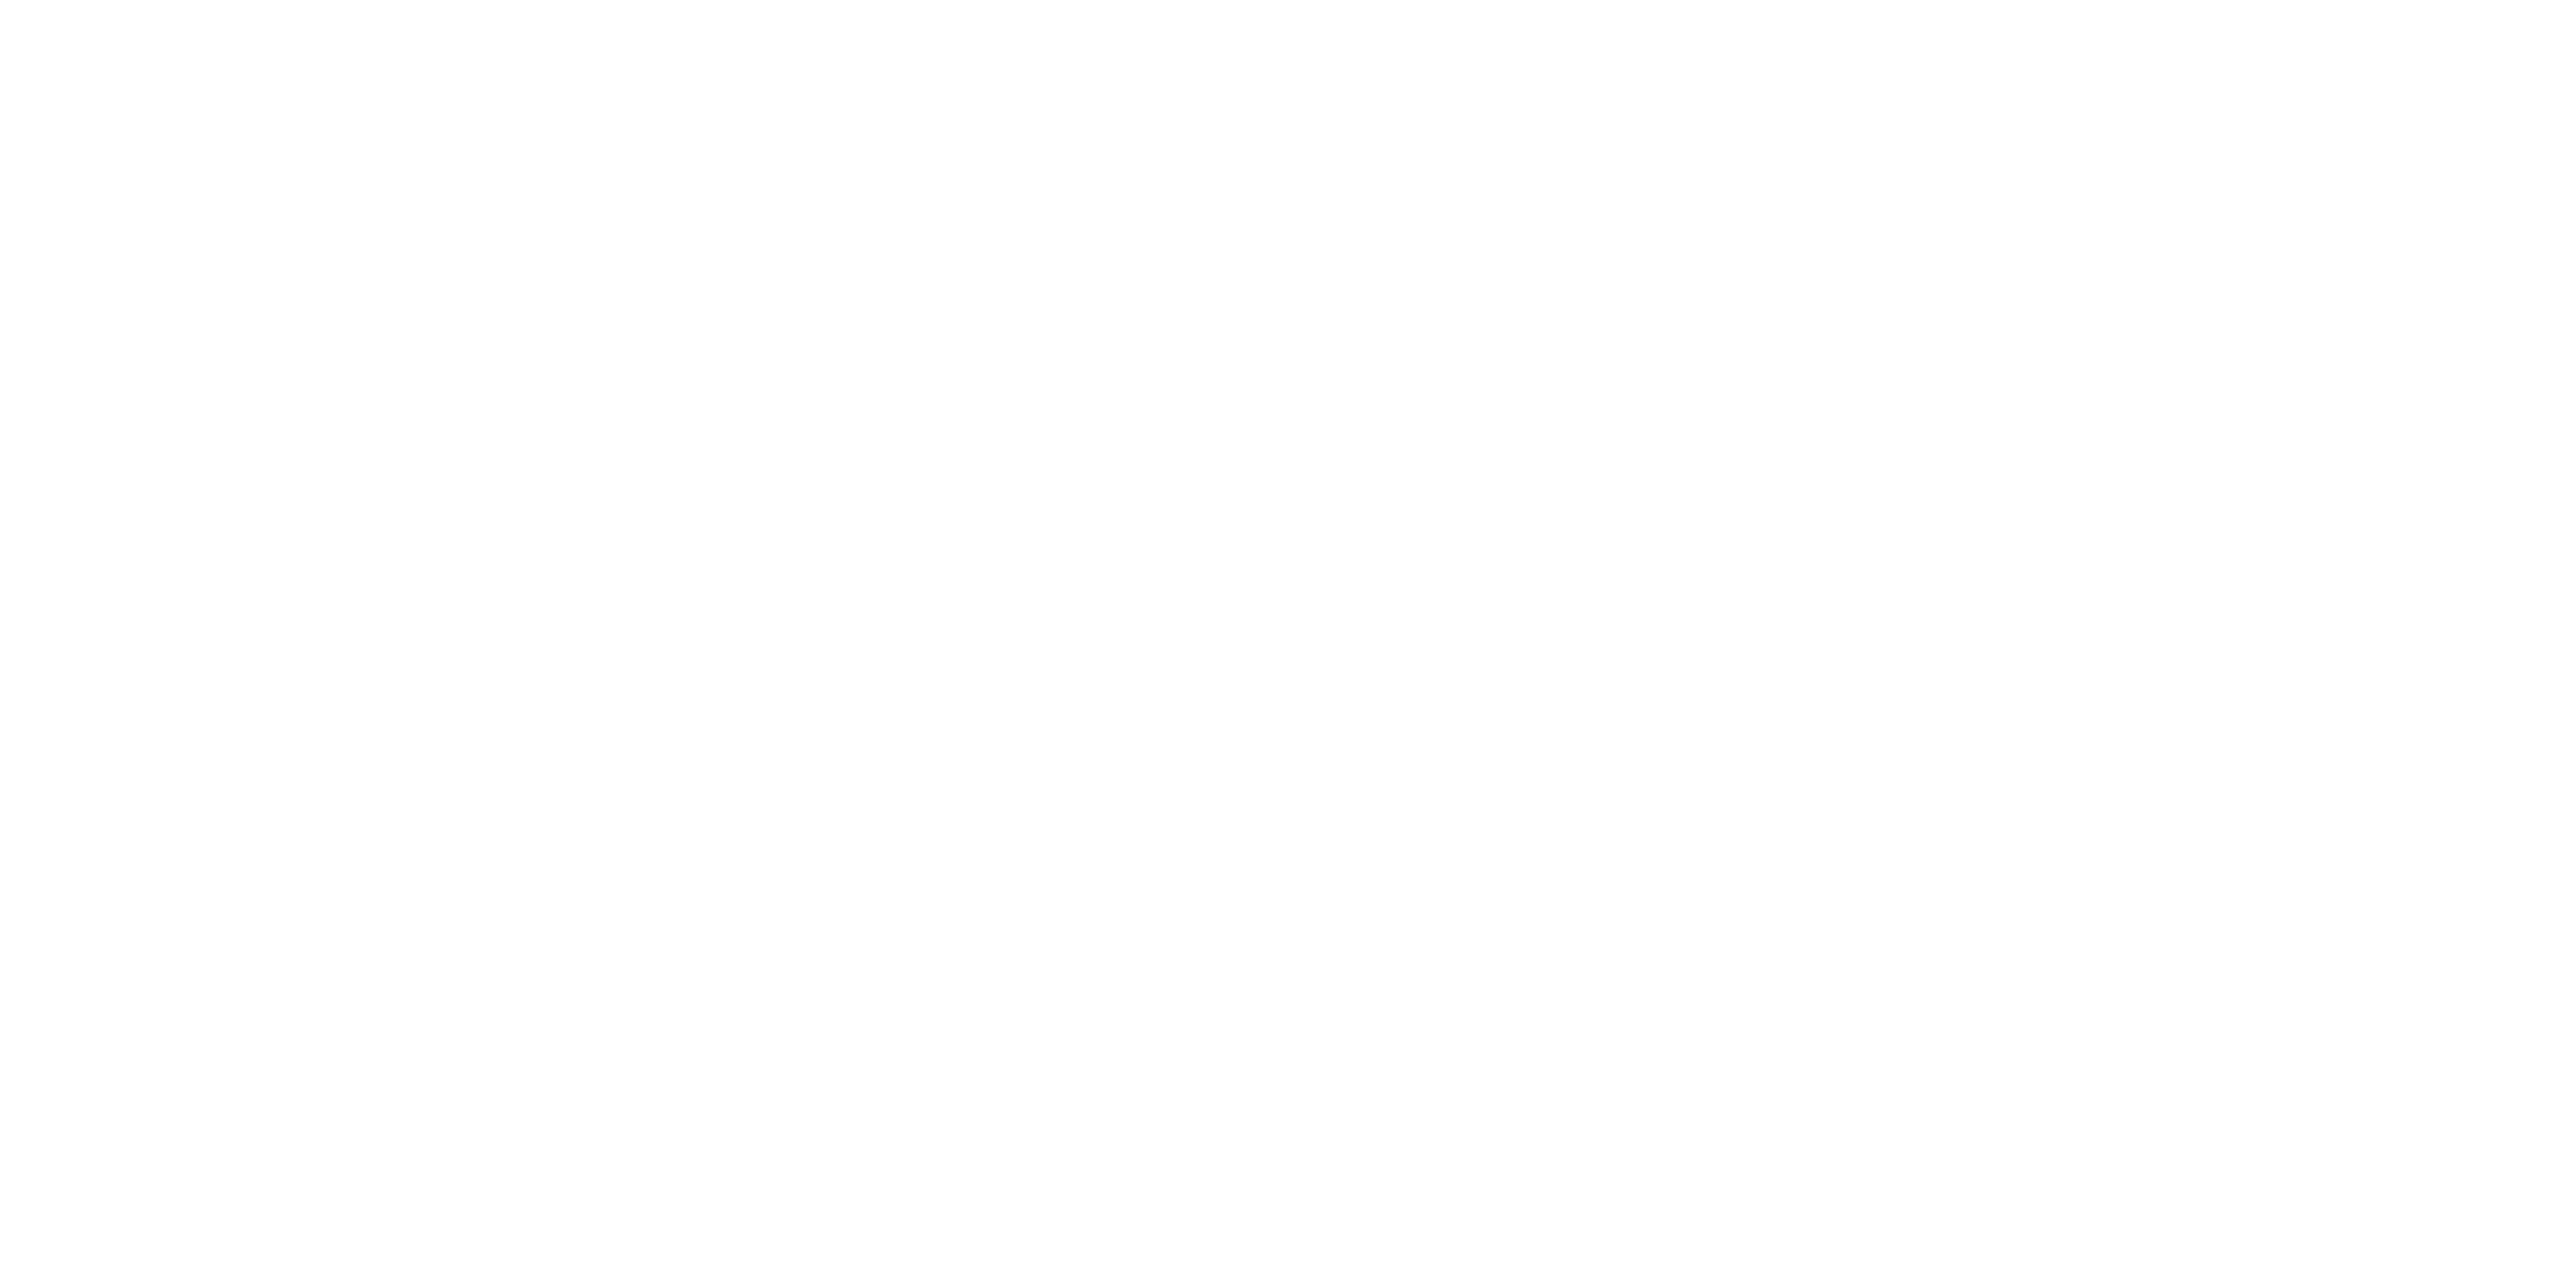 AACTA-white.png